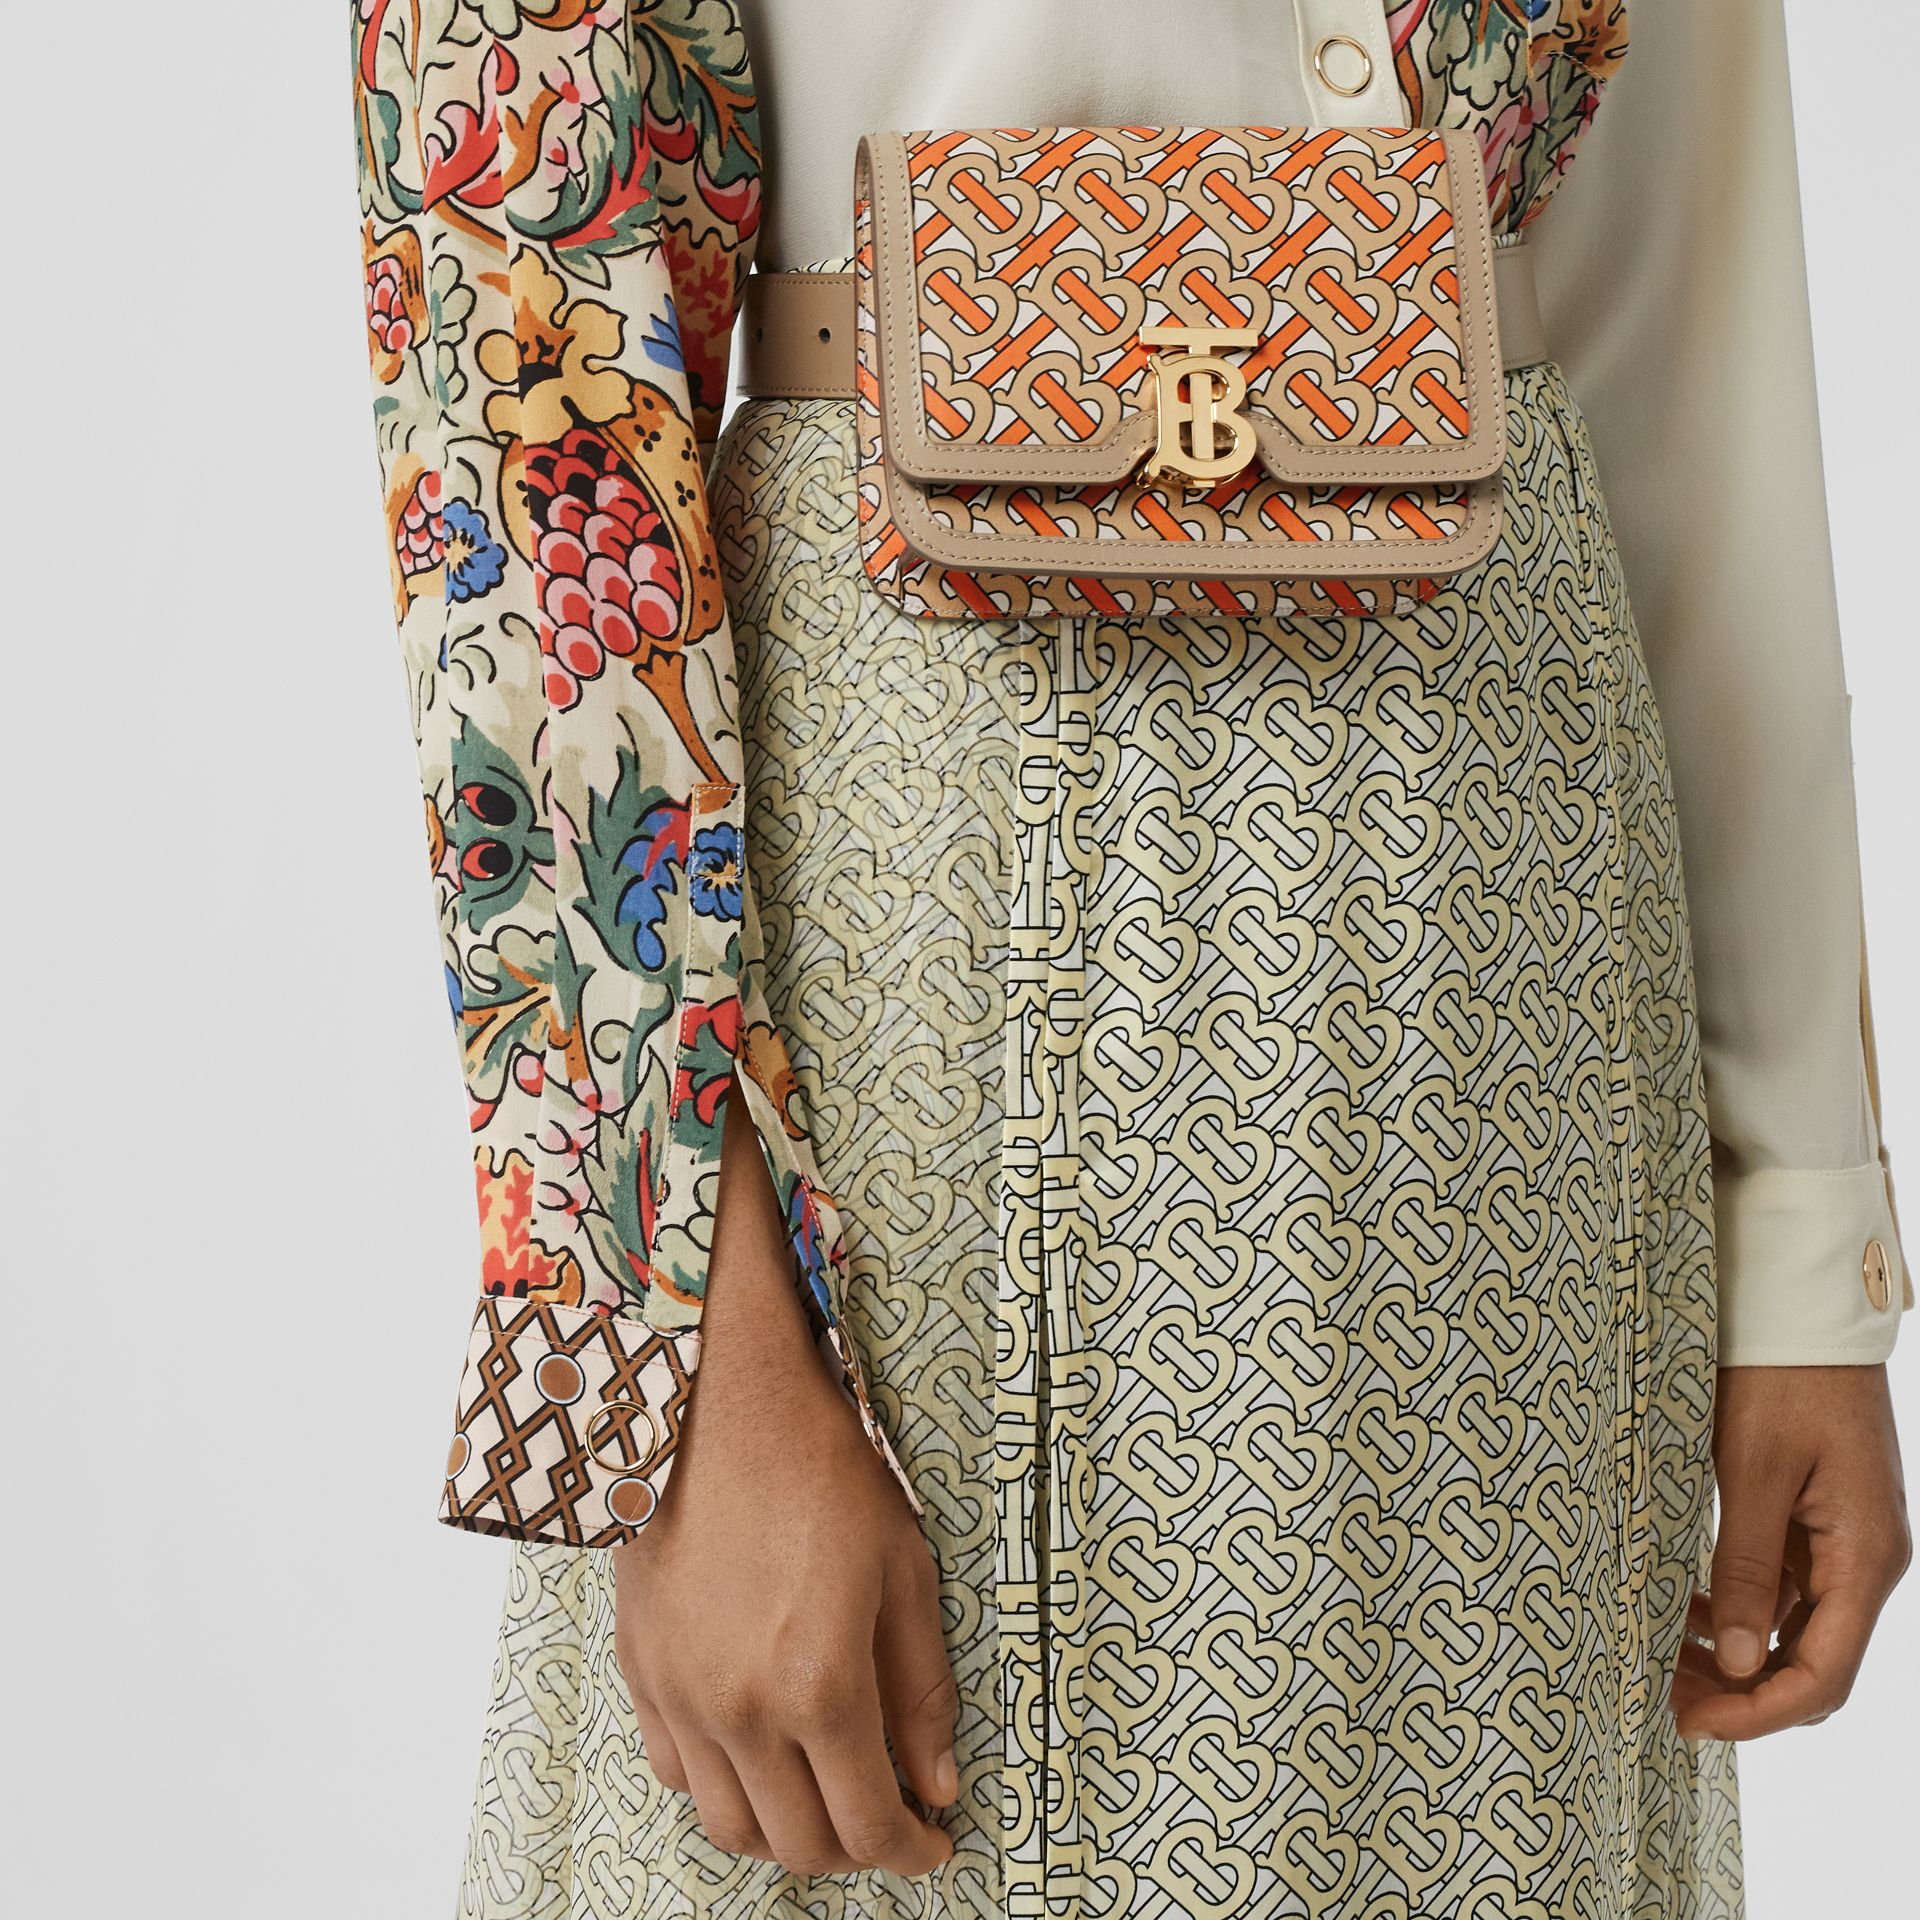 Belted Monogram Print Leather TB Bag in Bright Orange - Women | Burberry - gallery image 2